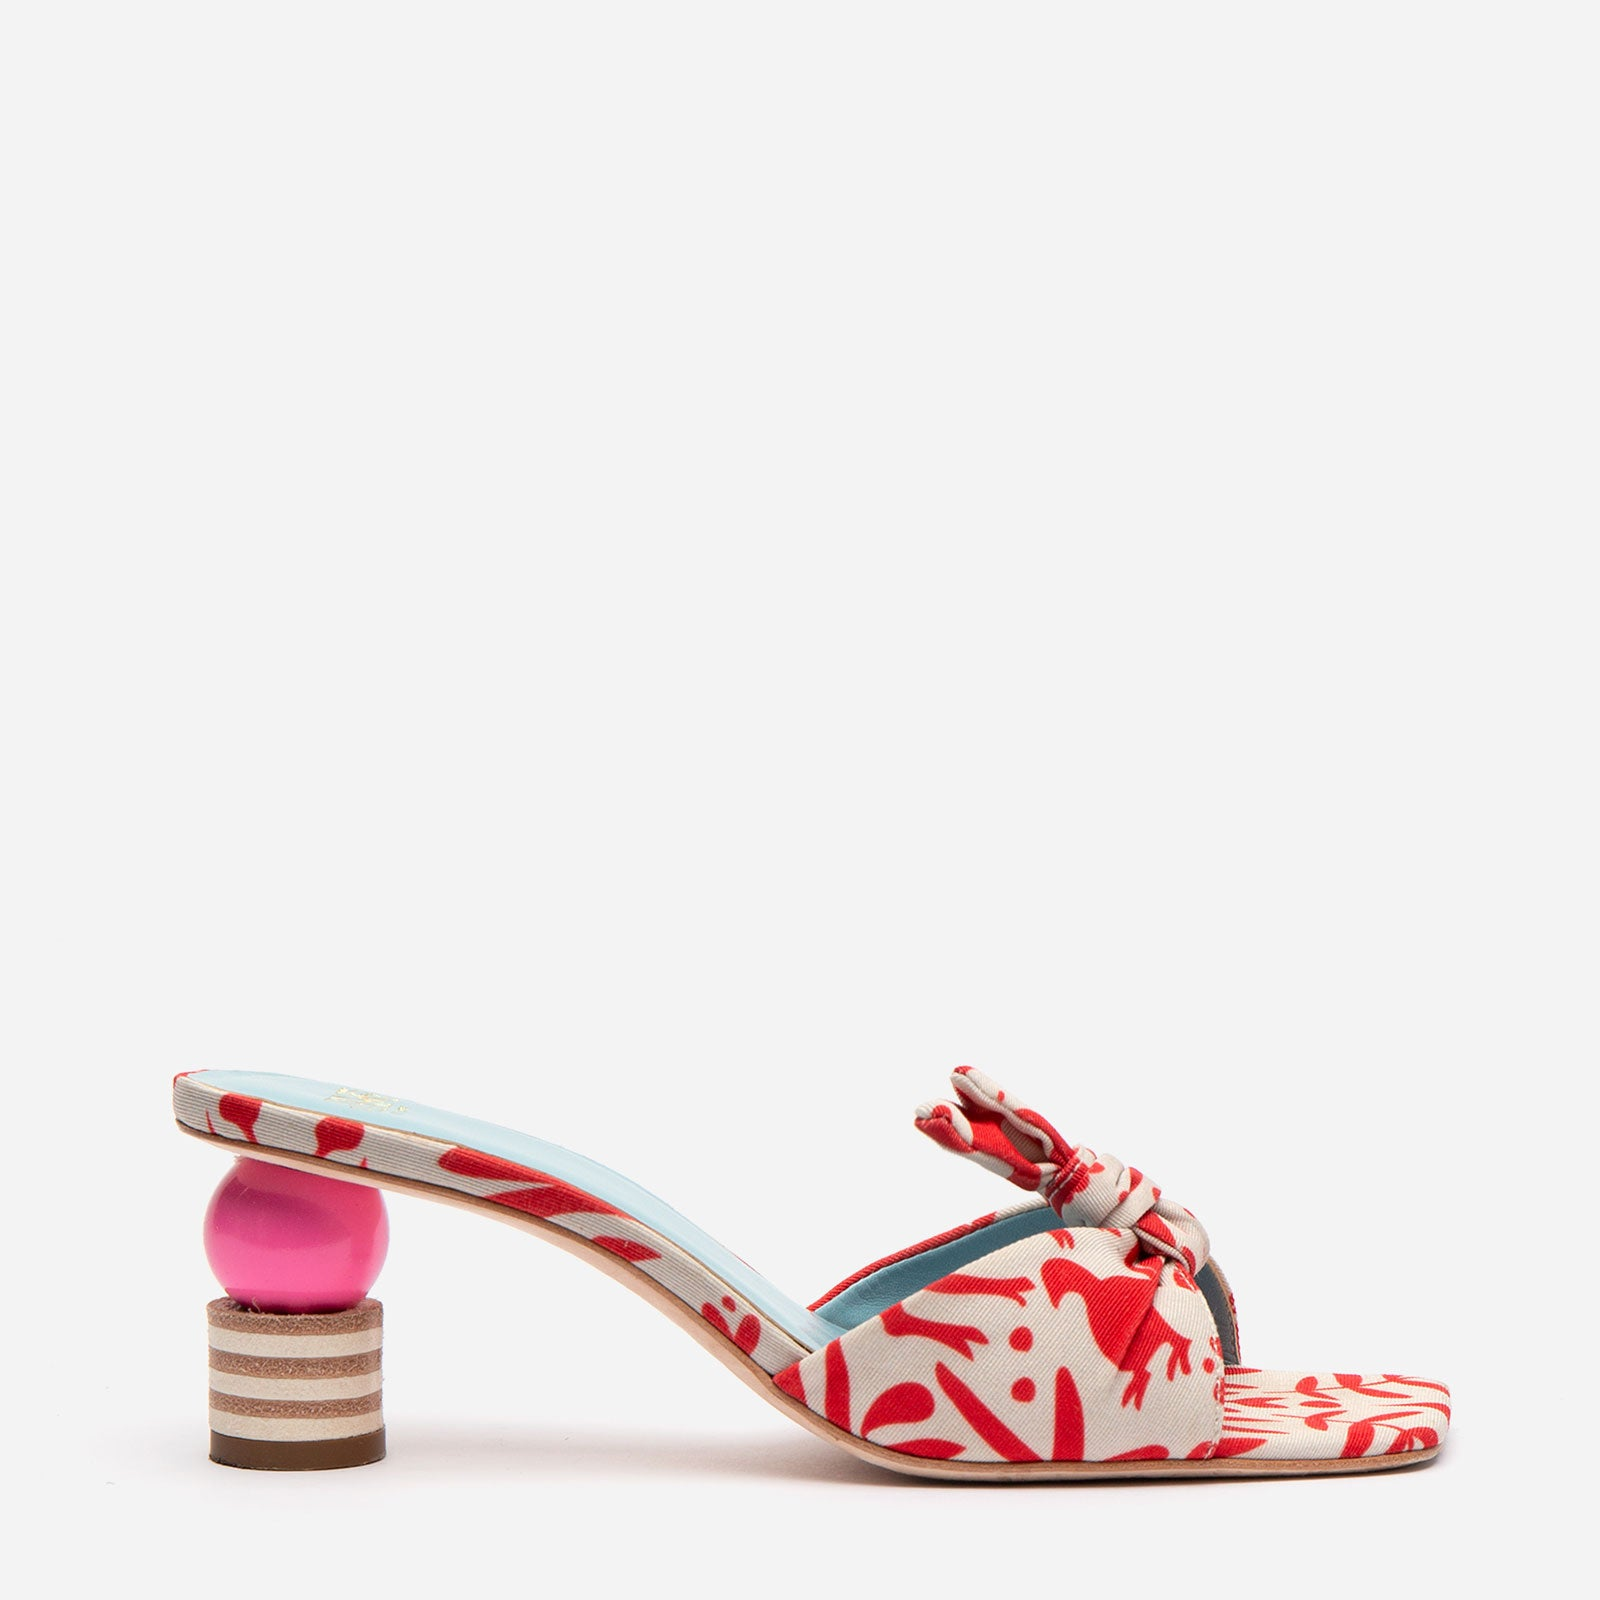 Amanda Mule Silk Faille Veracruz Red